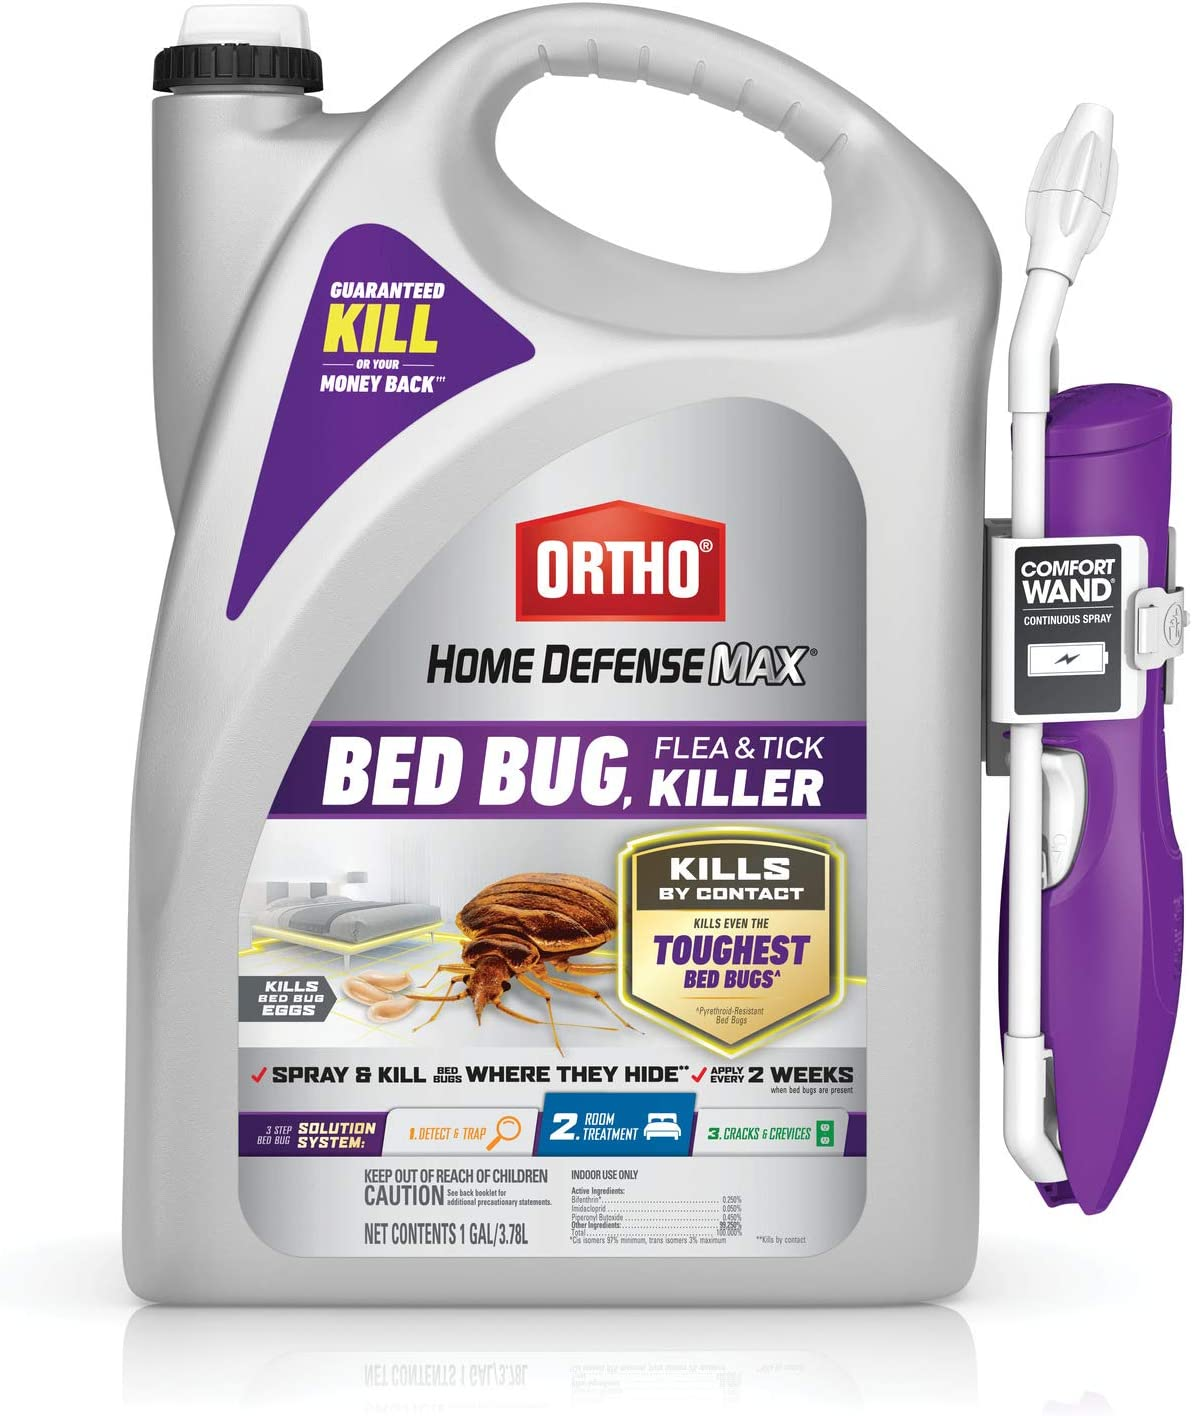 Ortho Home Defense Max Bed Bug Flea 専門店 Read ◆在庫限り◆ Tick Killer With - and